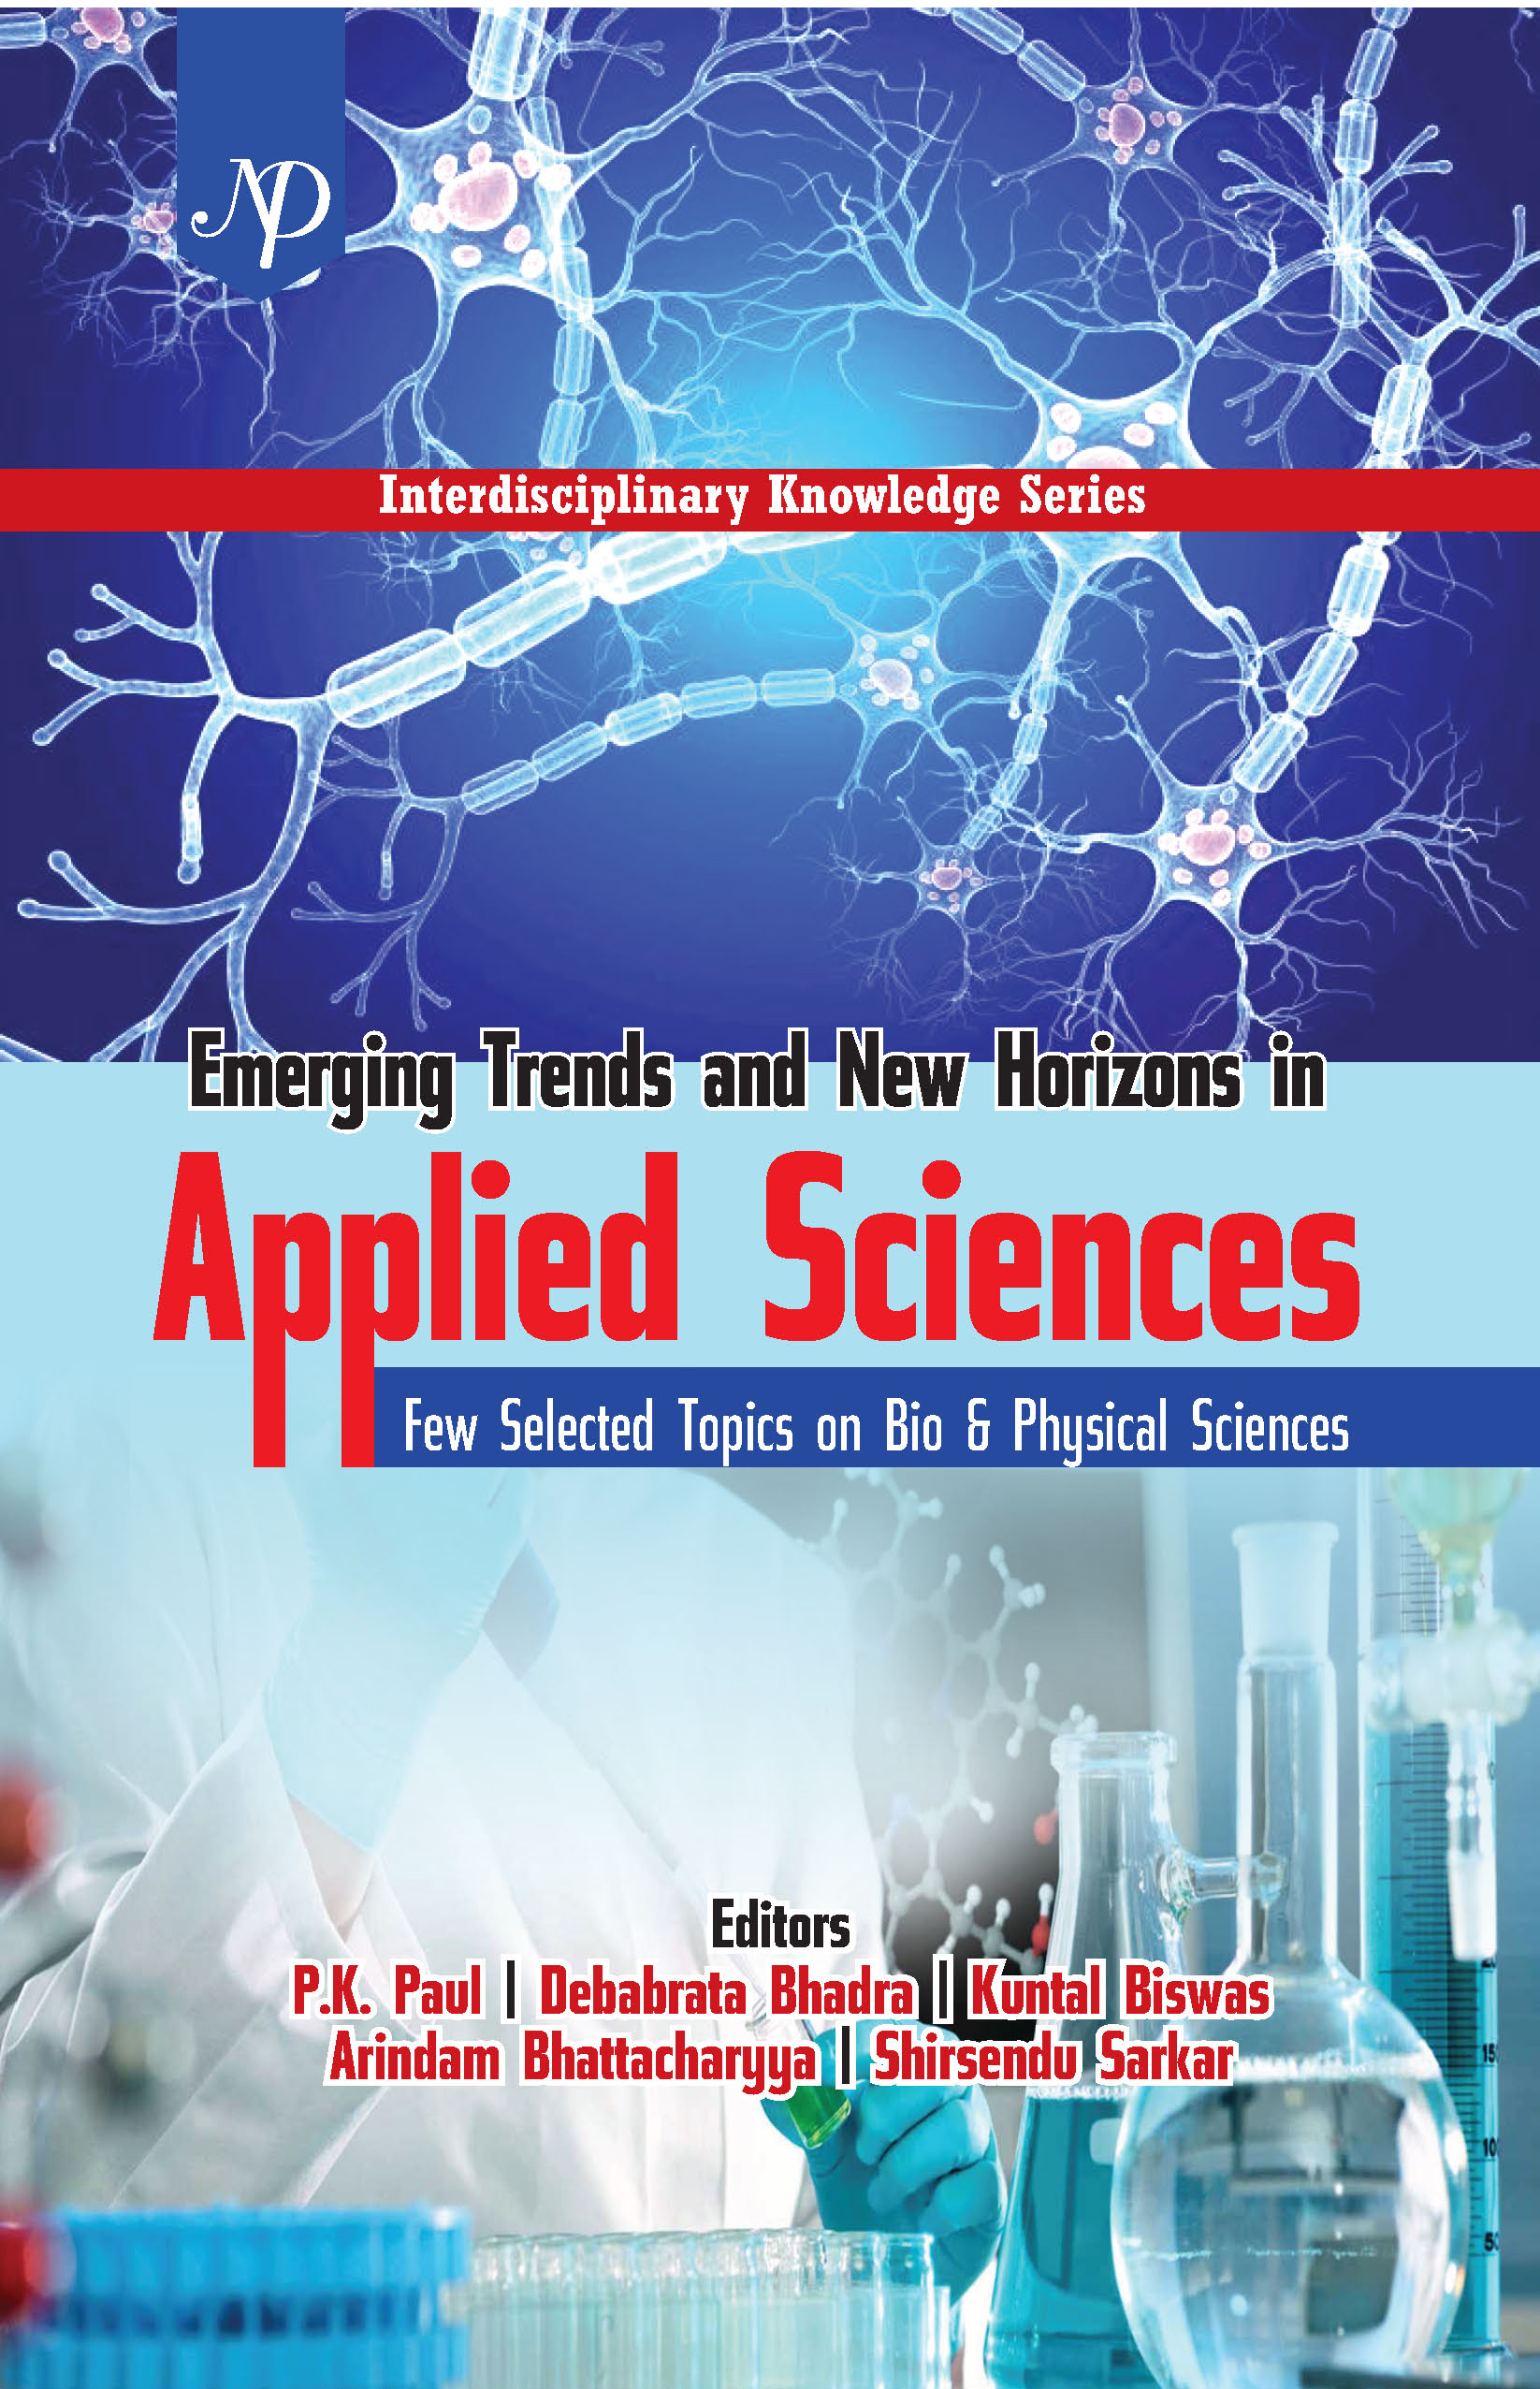 Emerging Trends and New Horizons in Applied Sciences by PK Paul.jpg